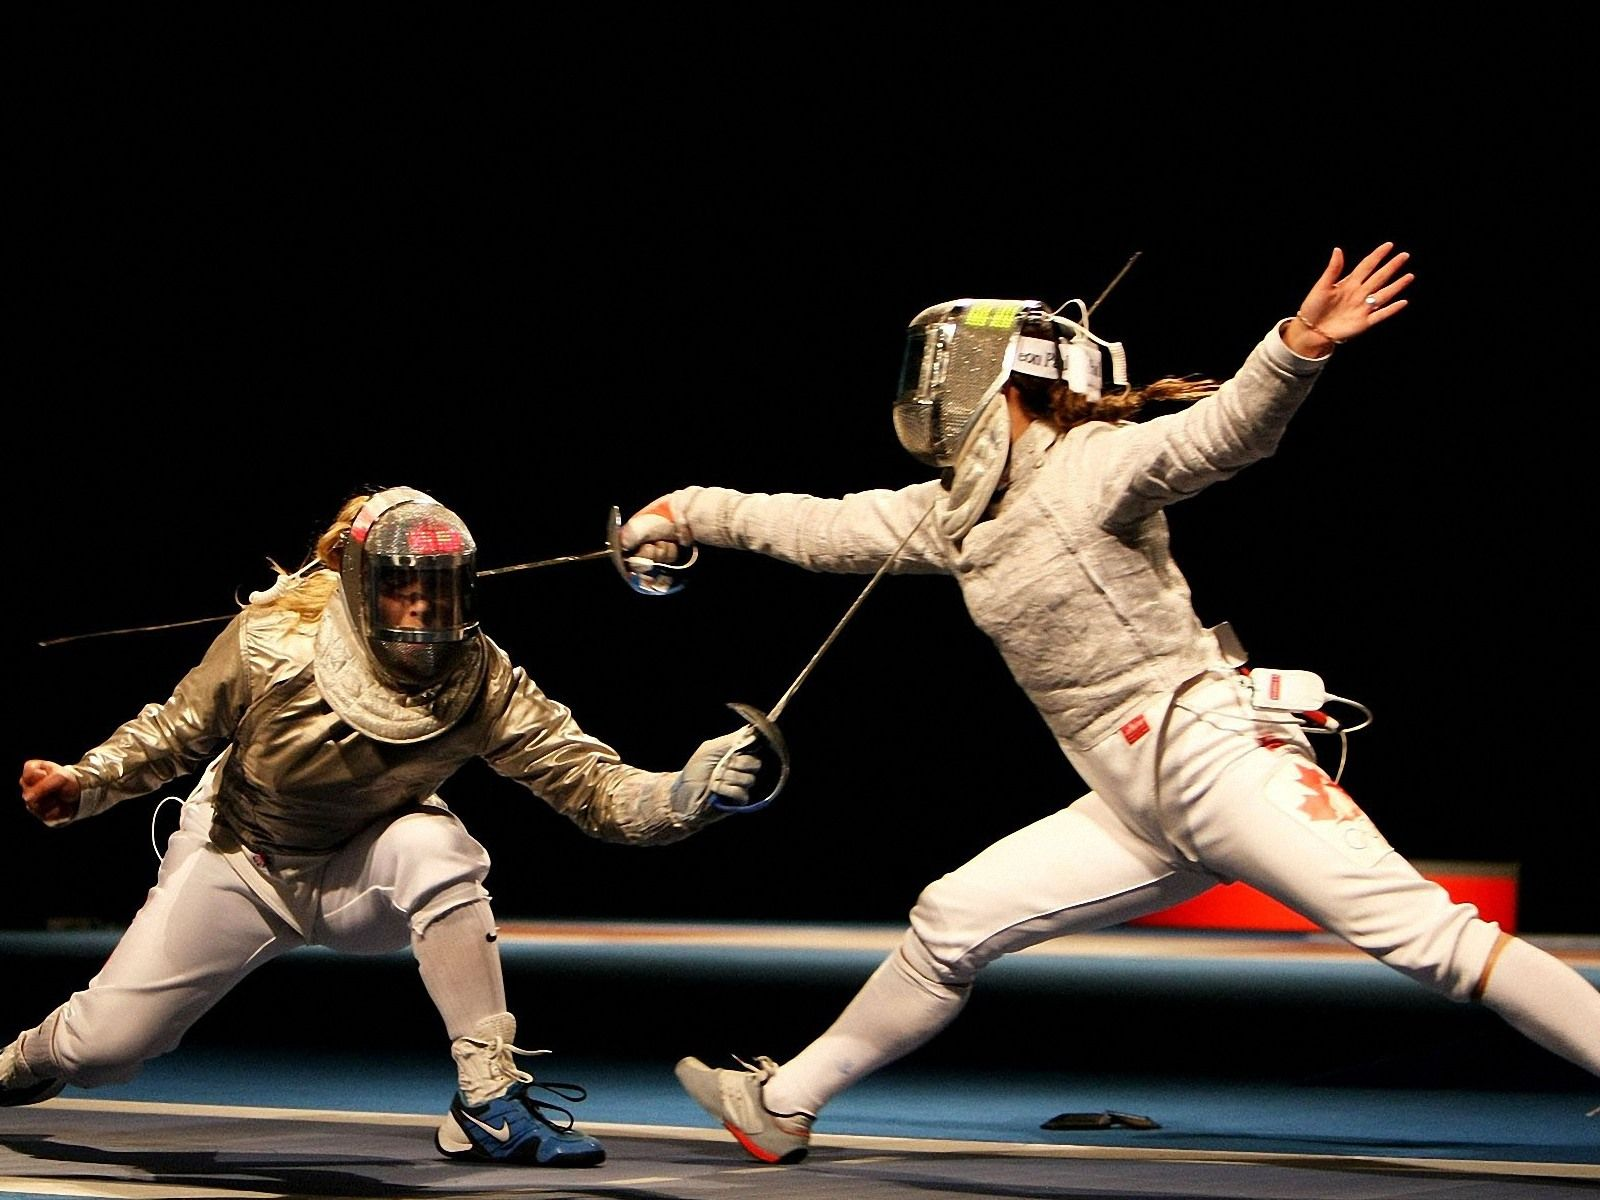 Fencing Women Fencing Wallpapers Hd Wallpapers 94002 Fencing Sport Women S Fencing Sports Images